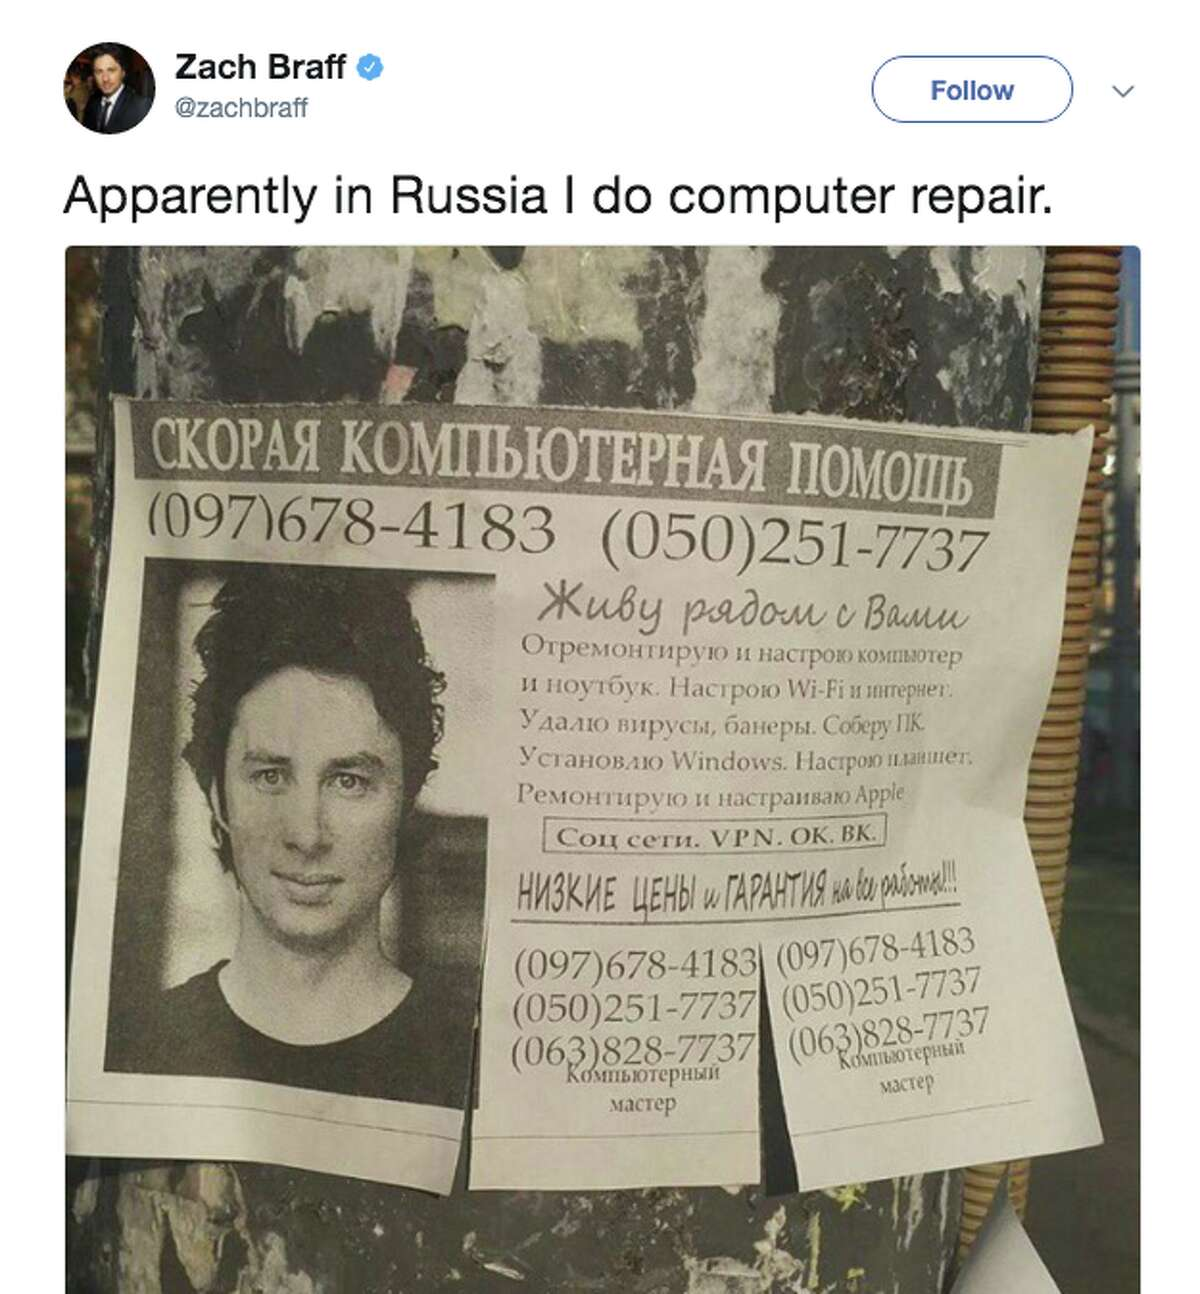 The likeness of Zach Braff was used on a Russian advertisement for erectile dysfunction. He's not the only celebrity whose image has been used, likely without permission, to promote a product.